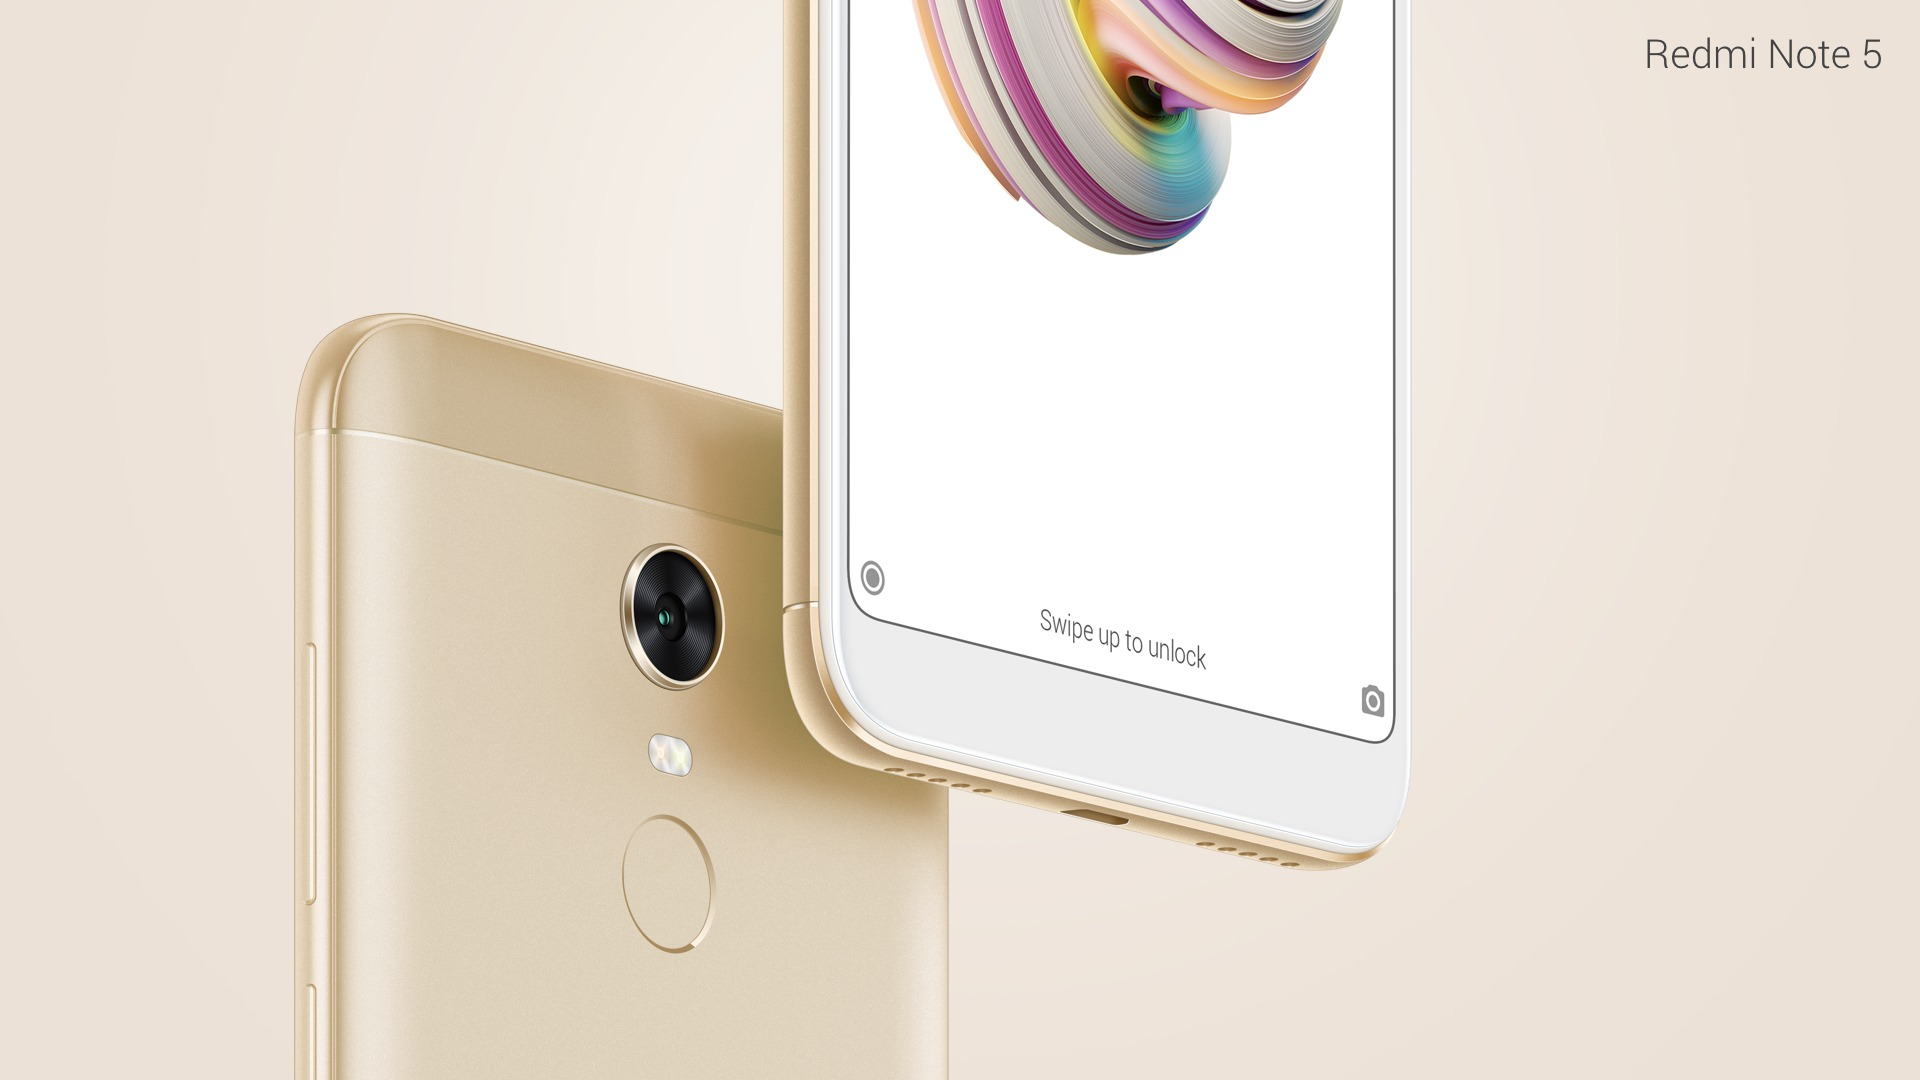 Xiaomi Redmi Note 5 officially launched - Here's all you need to know 3